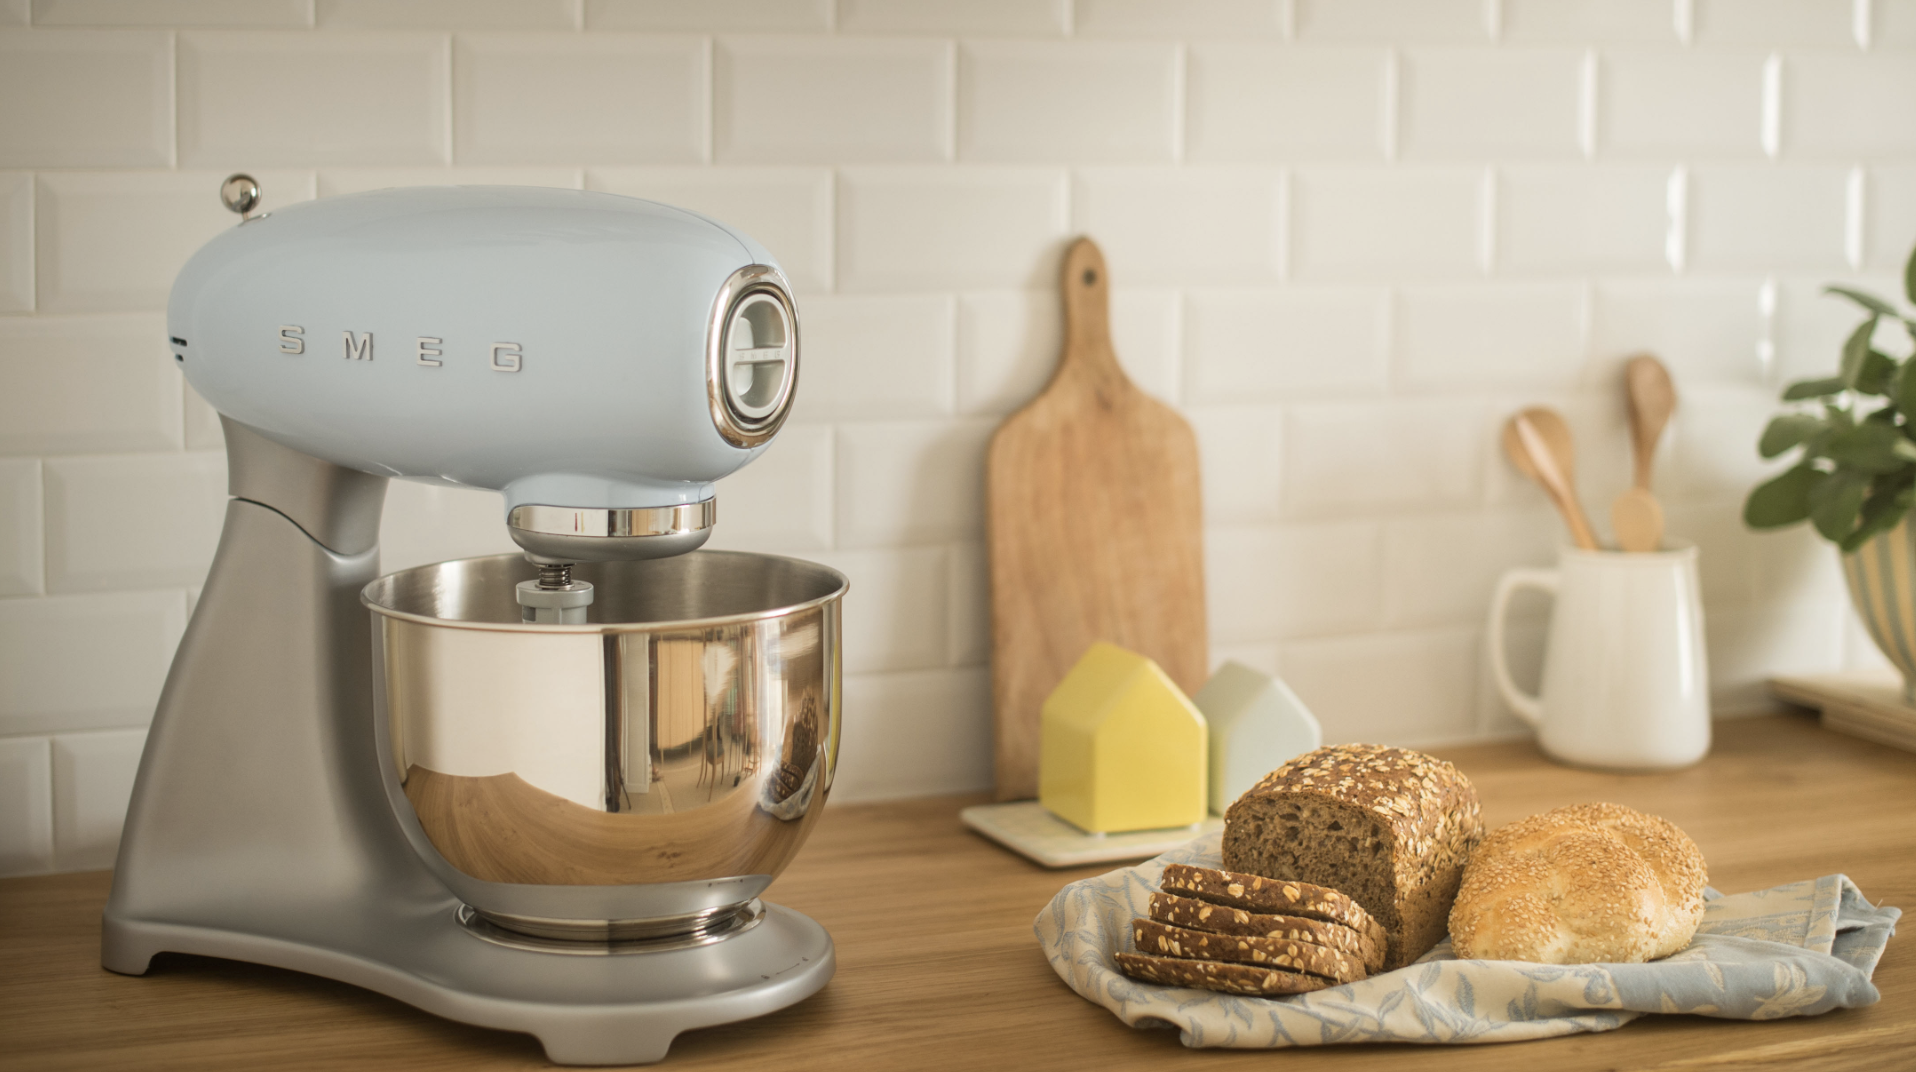 Healthy Recipes You Can Make with a Smeg Stand Mixer